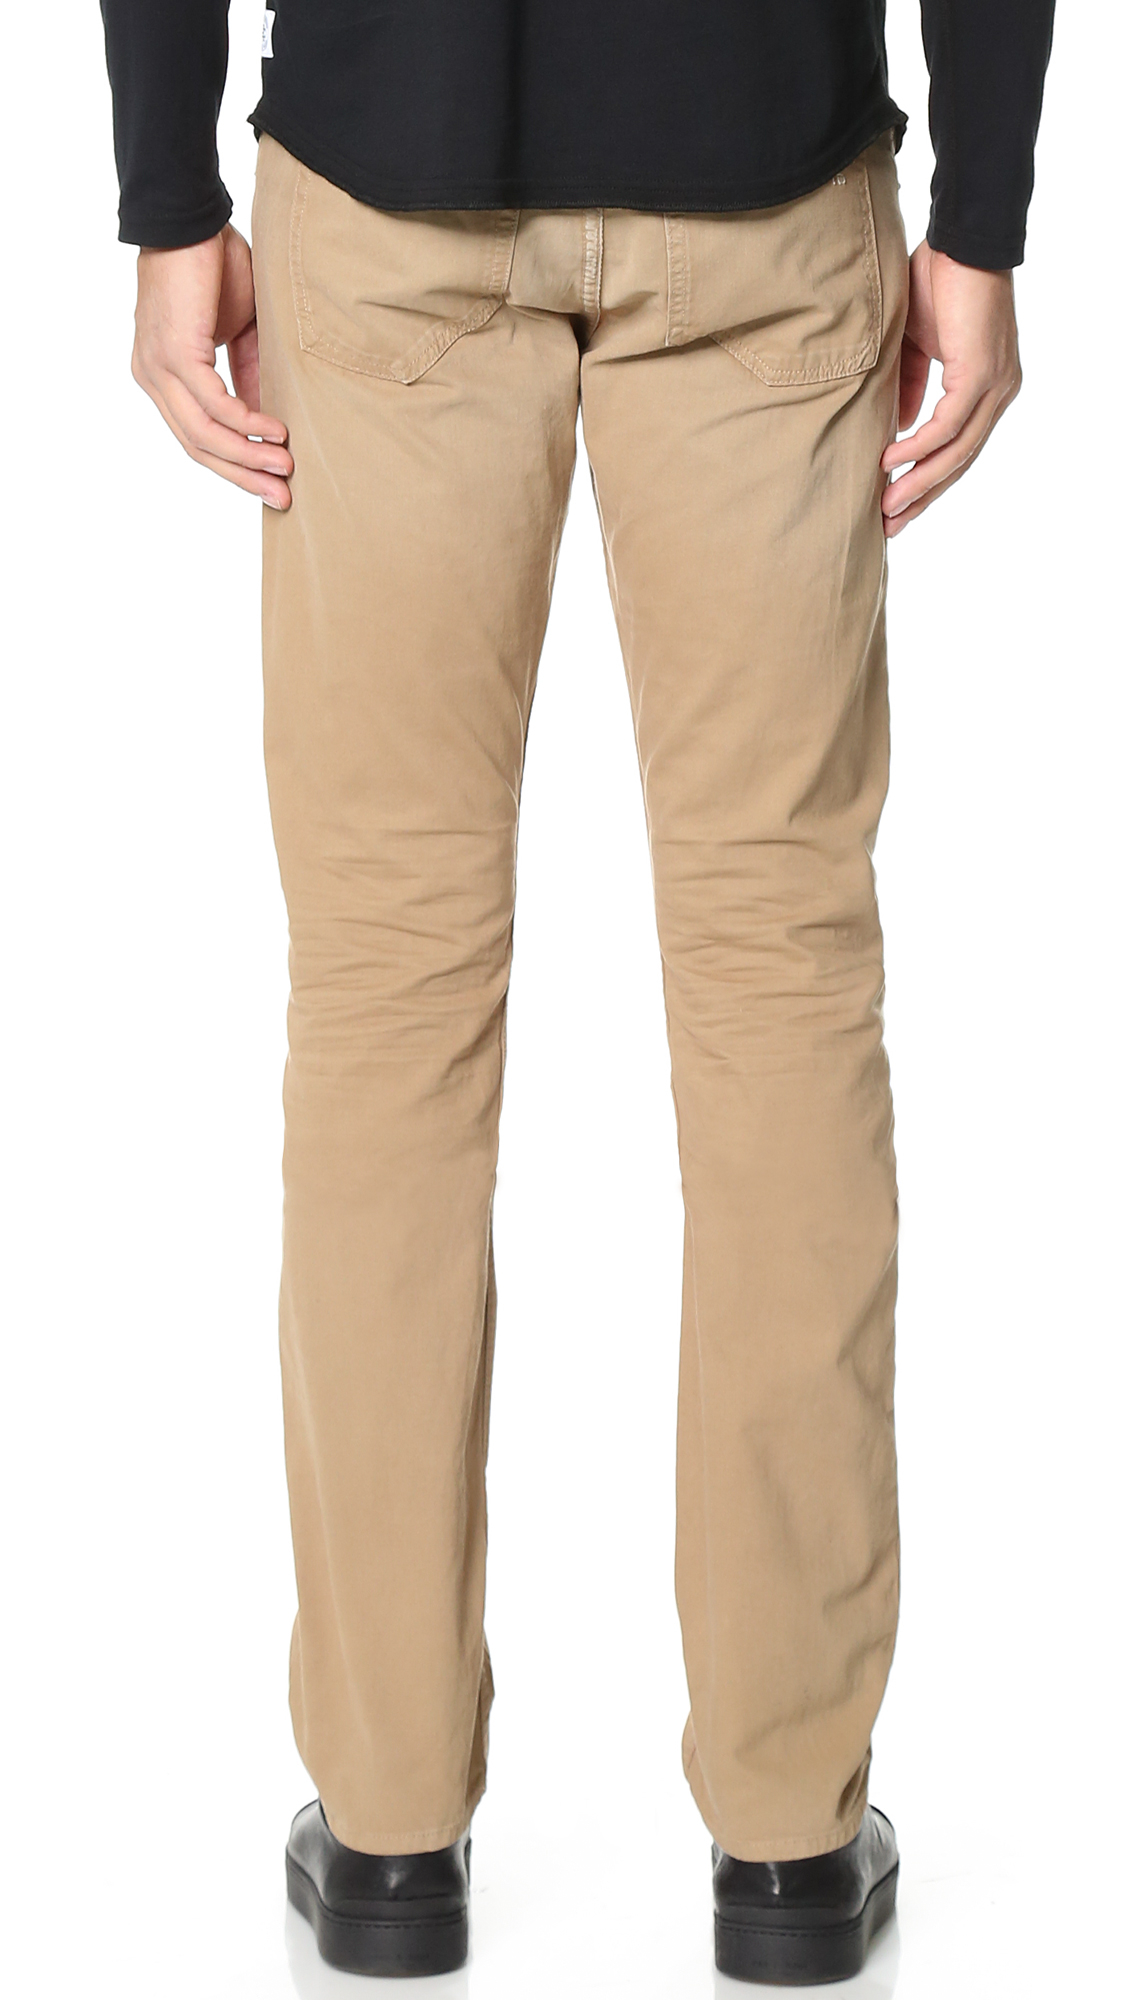 Rag & Bone Denim Standard Issue Fit 3 Twill Jeans in Natural for Men